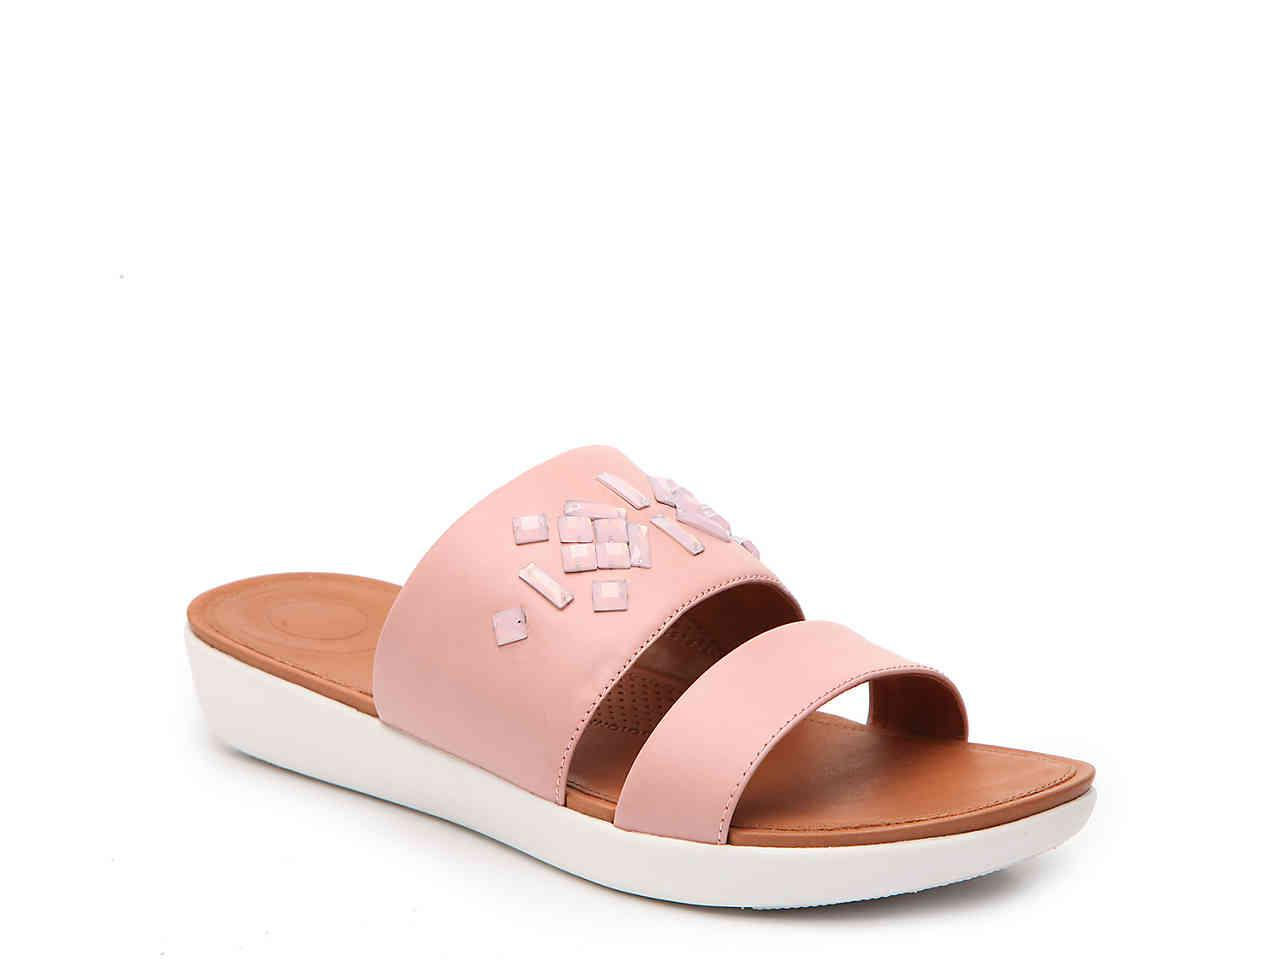 4bb57dfbf48de Lyst - Fitflop Delta Leather Slide Sandals - Crystal in Pink - Save 70%